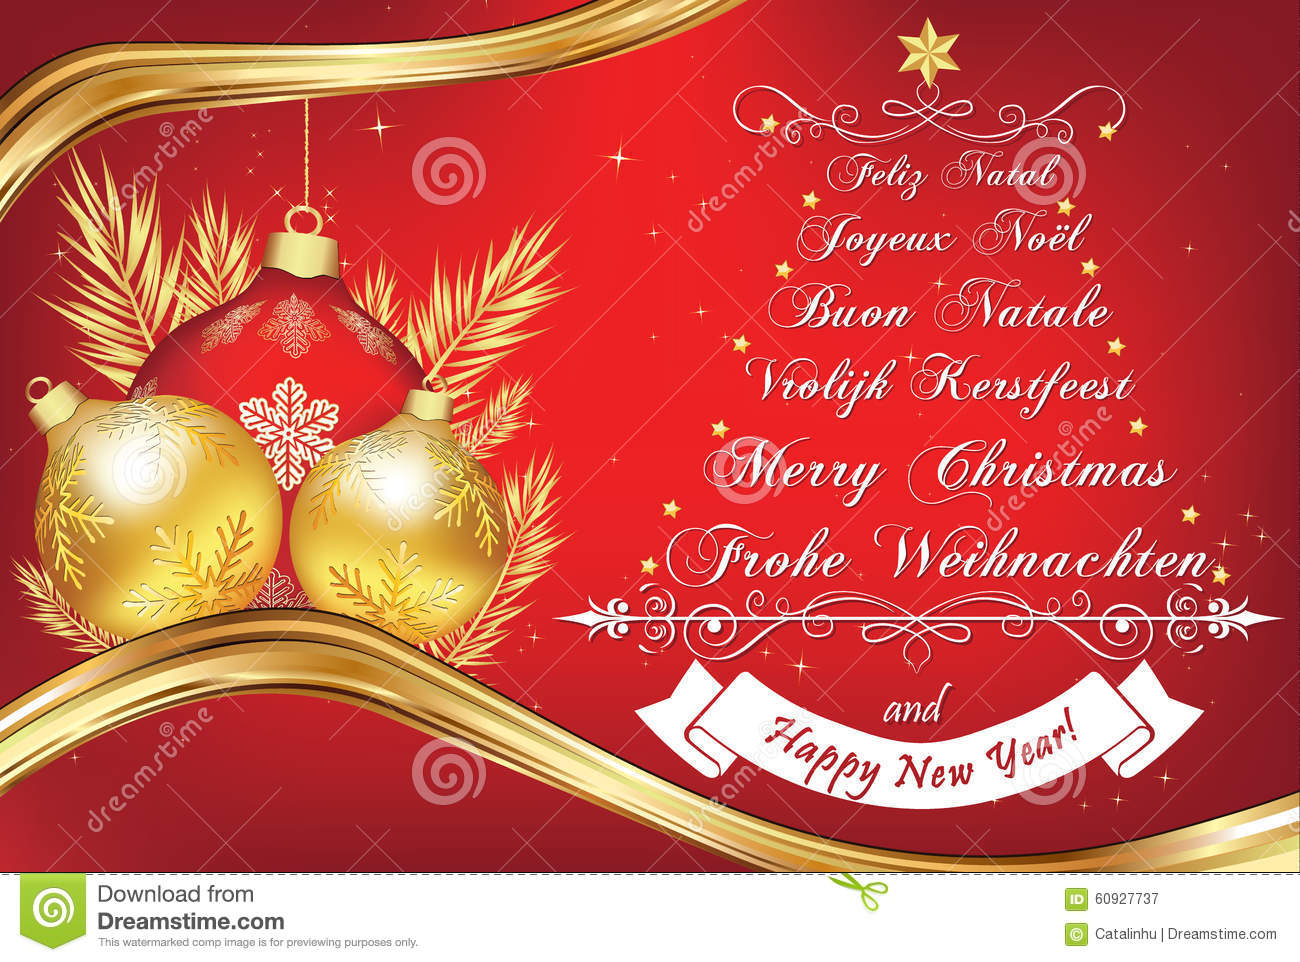 Business New Year Greeting Card In Many Languages Stock Vector ...